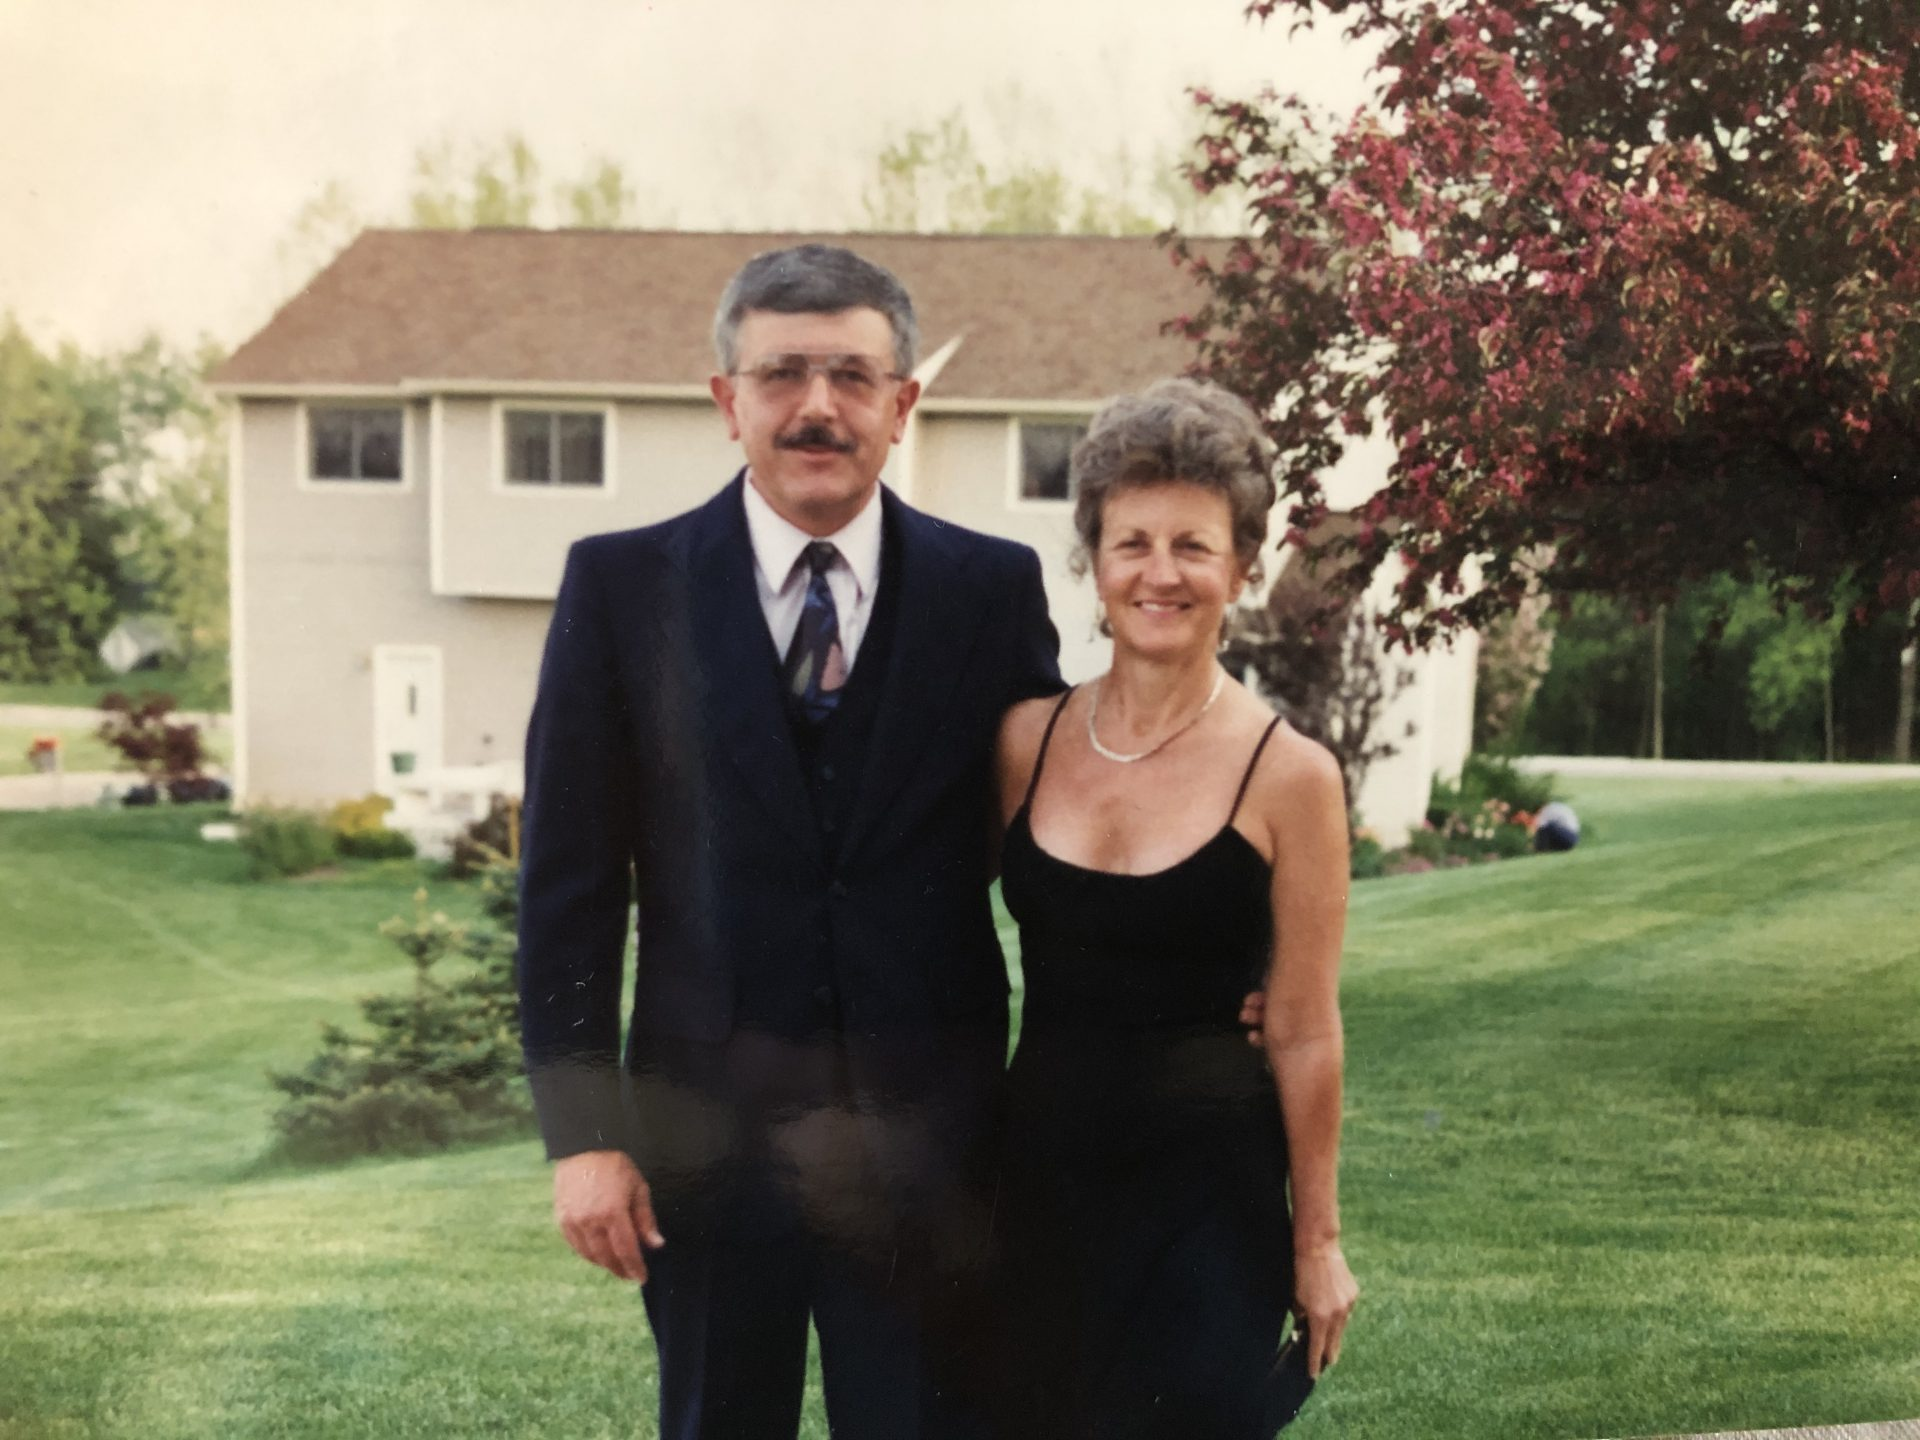 Mom and Dad<br /> Bendle Prom 1995 prom